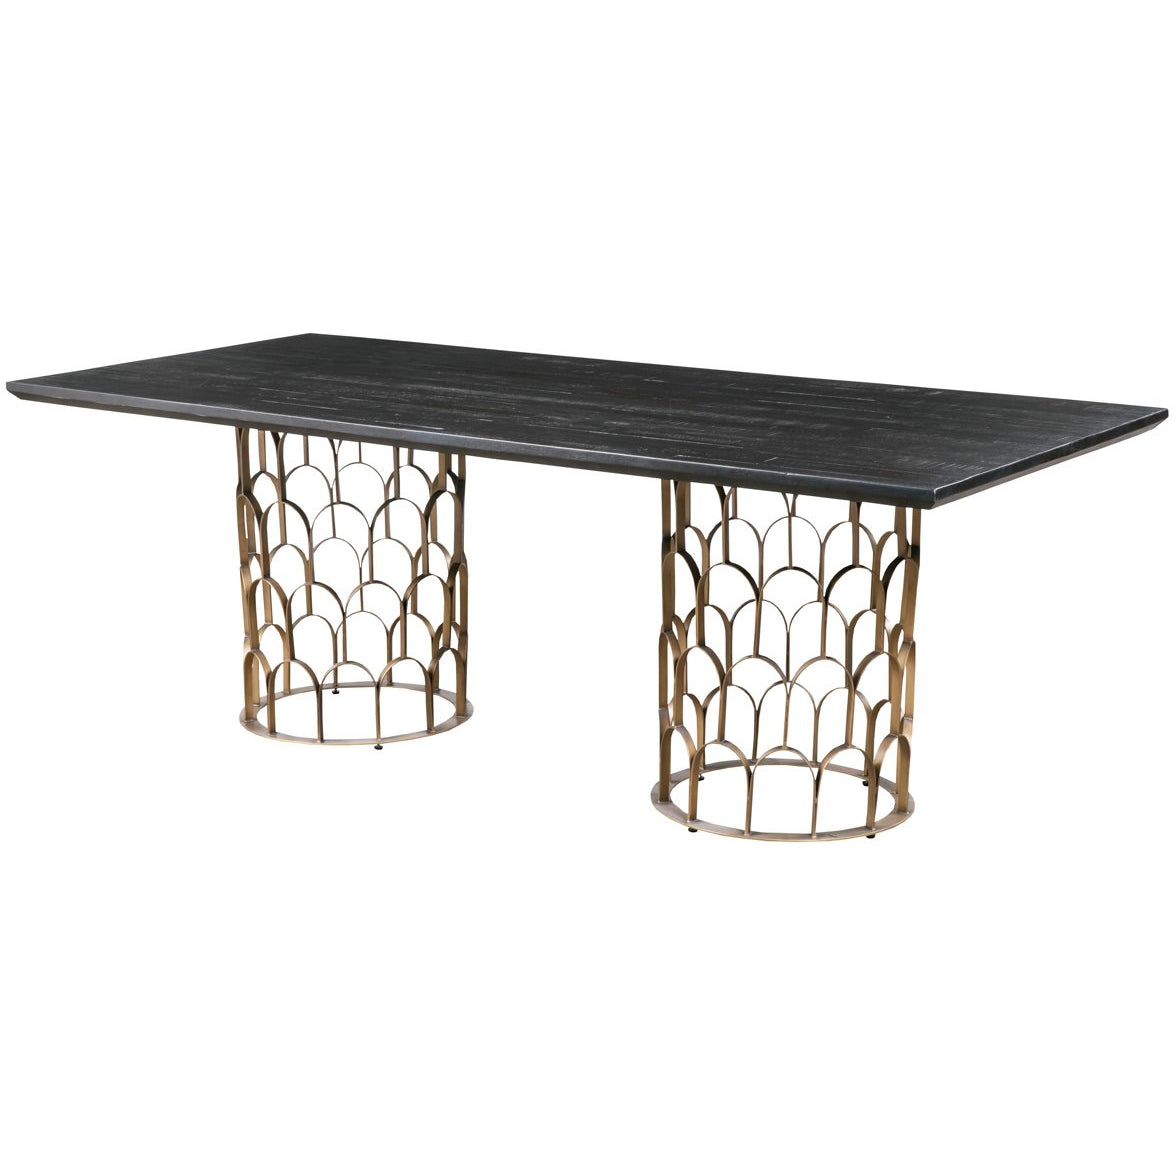 TOV Furniture Modern Gatsby Wood Dining Table - TOV Furniture, Minimal & Modern - 1